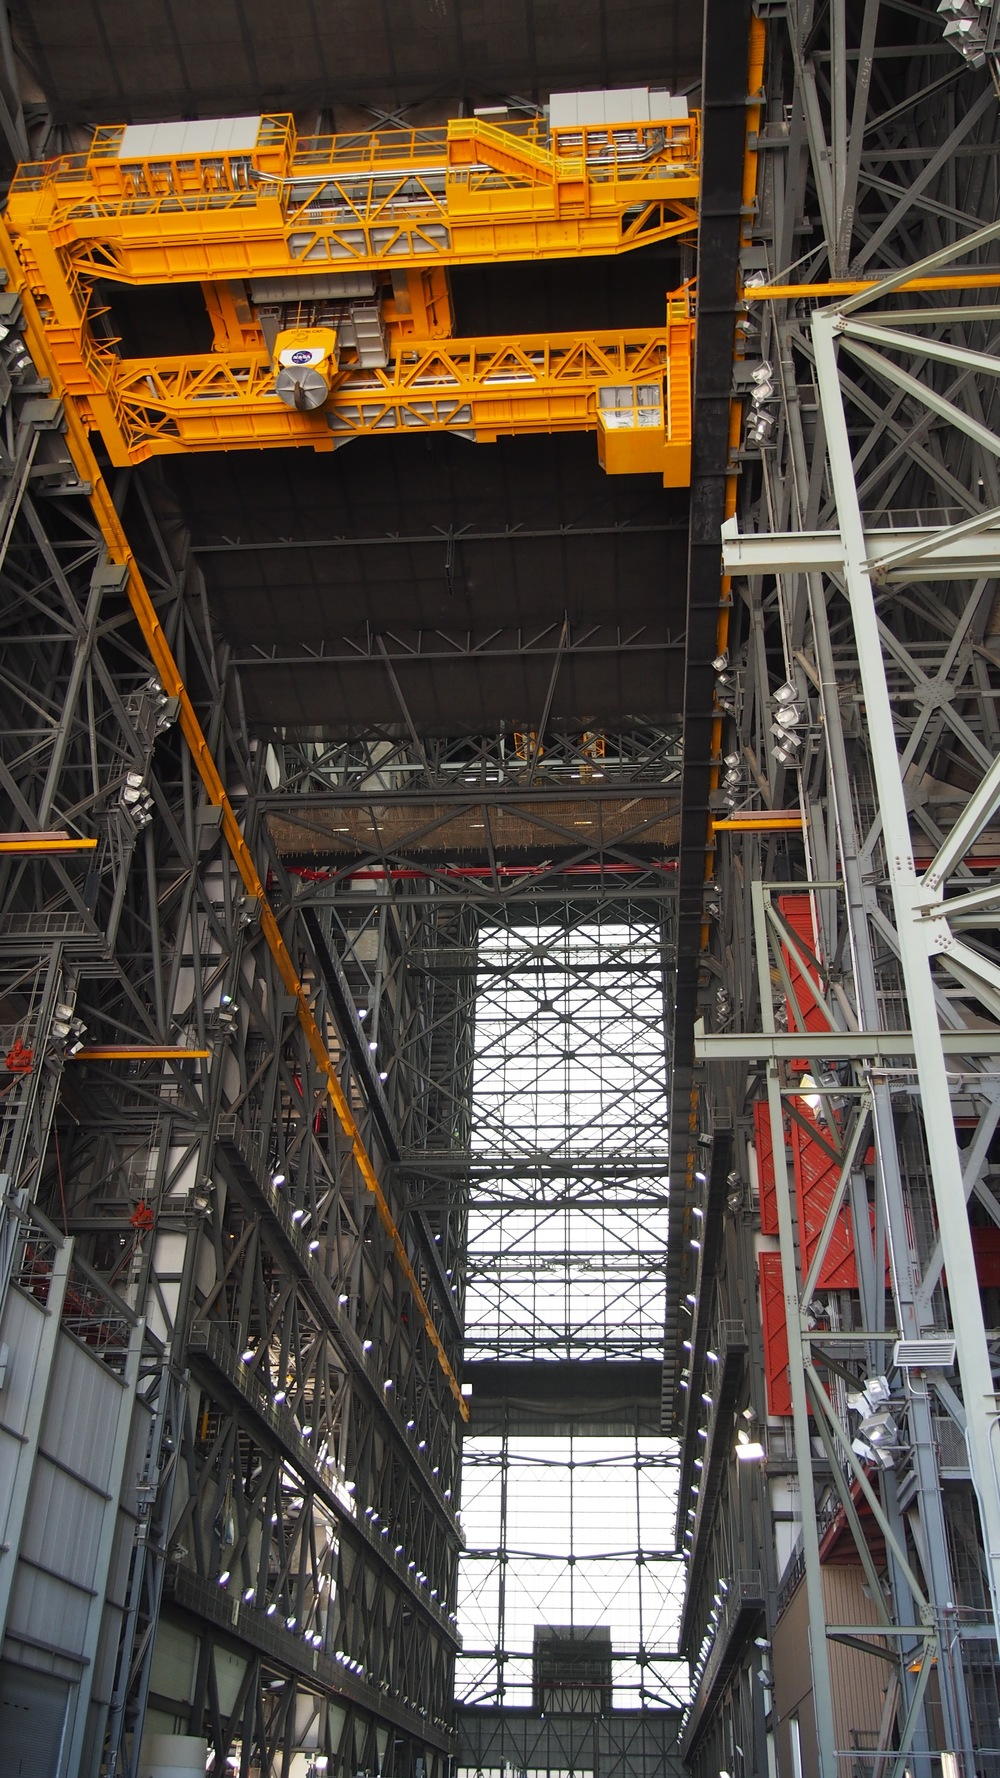 Looking up inside the VAB